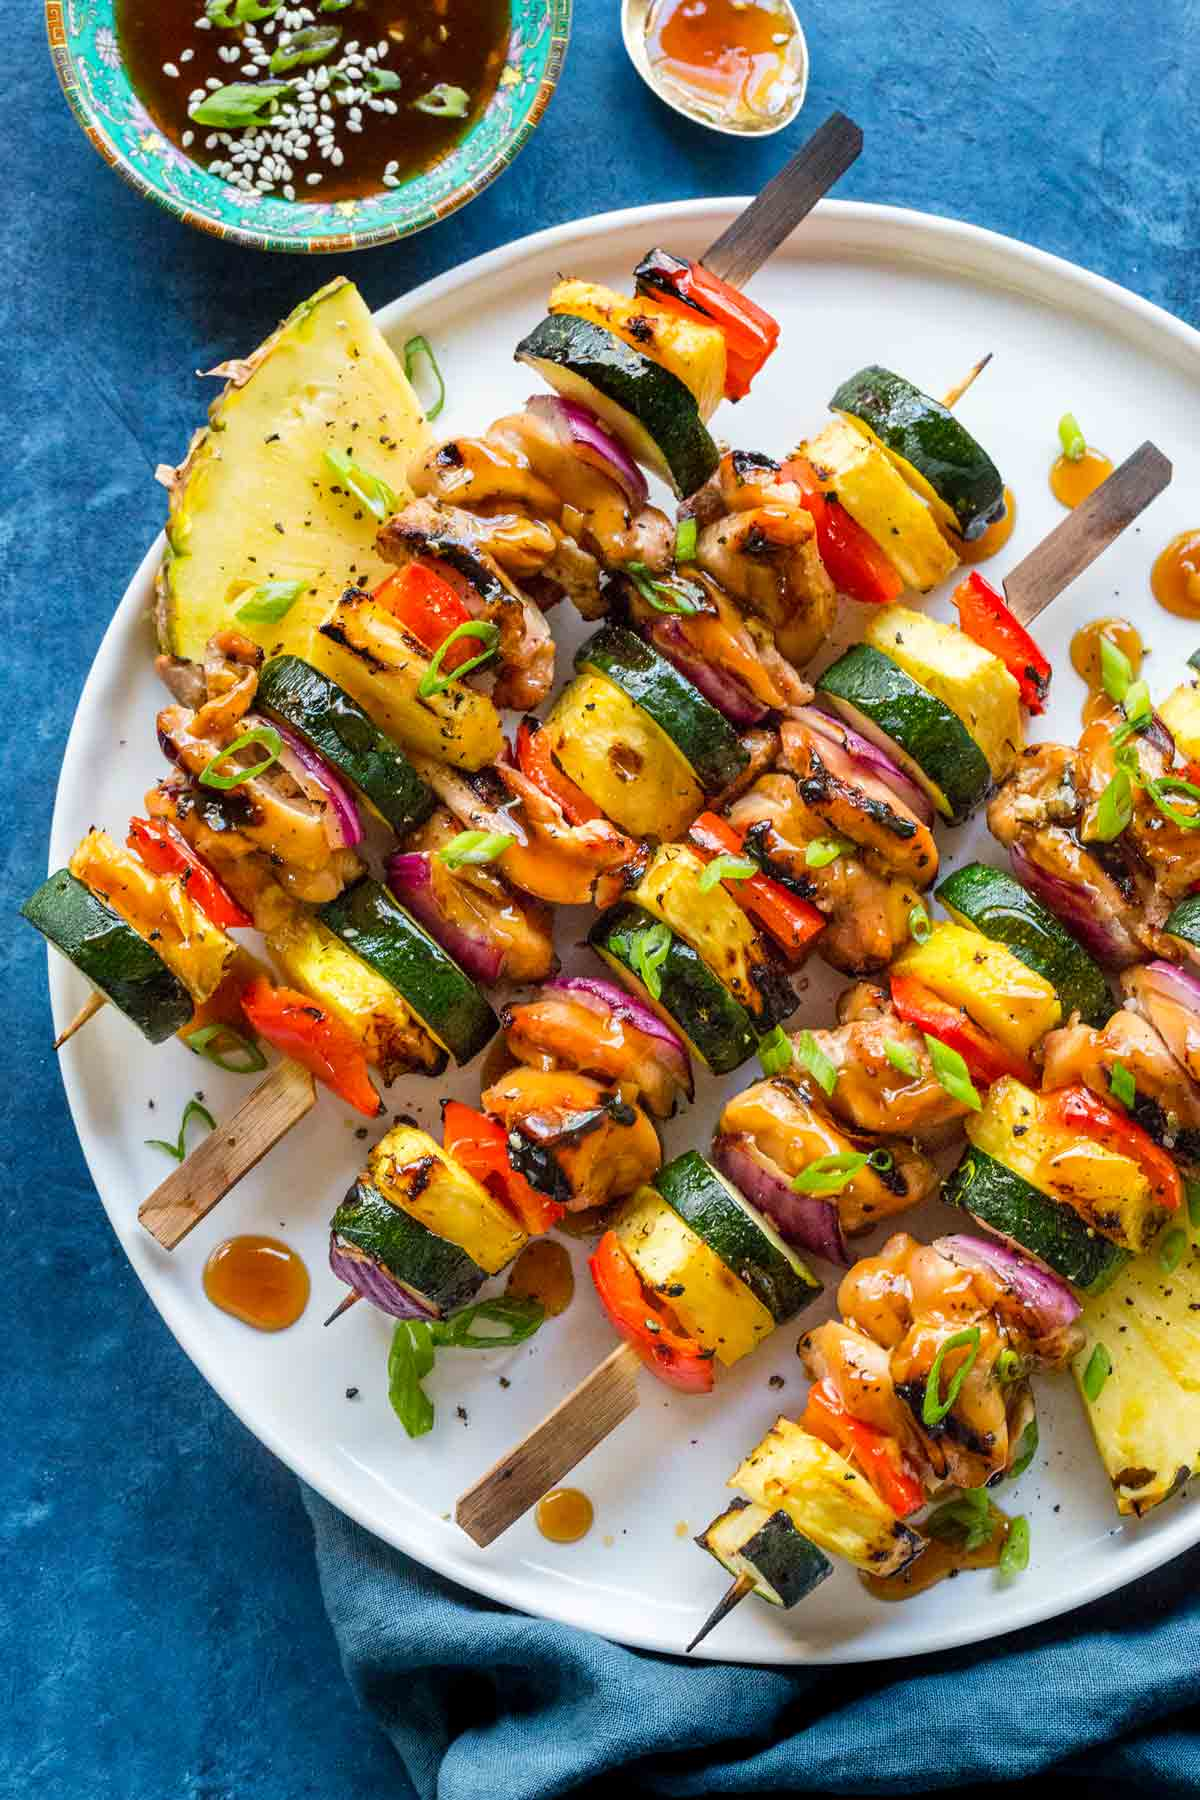 Plate of hawaiian chicken and pineapple chunks on wooden skewers